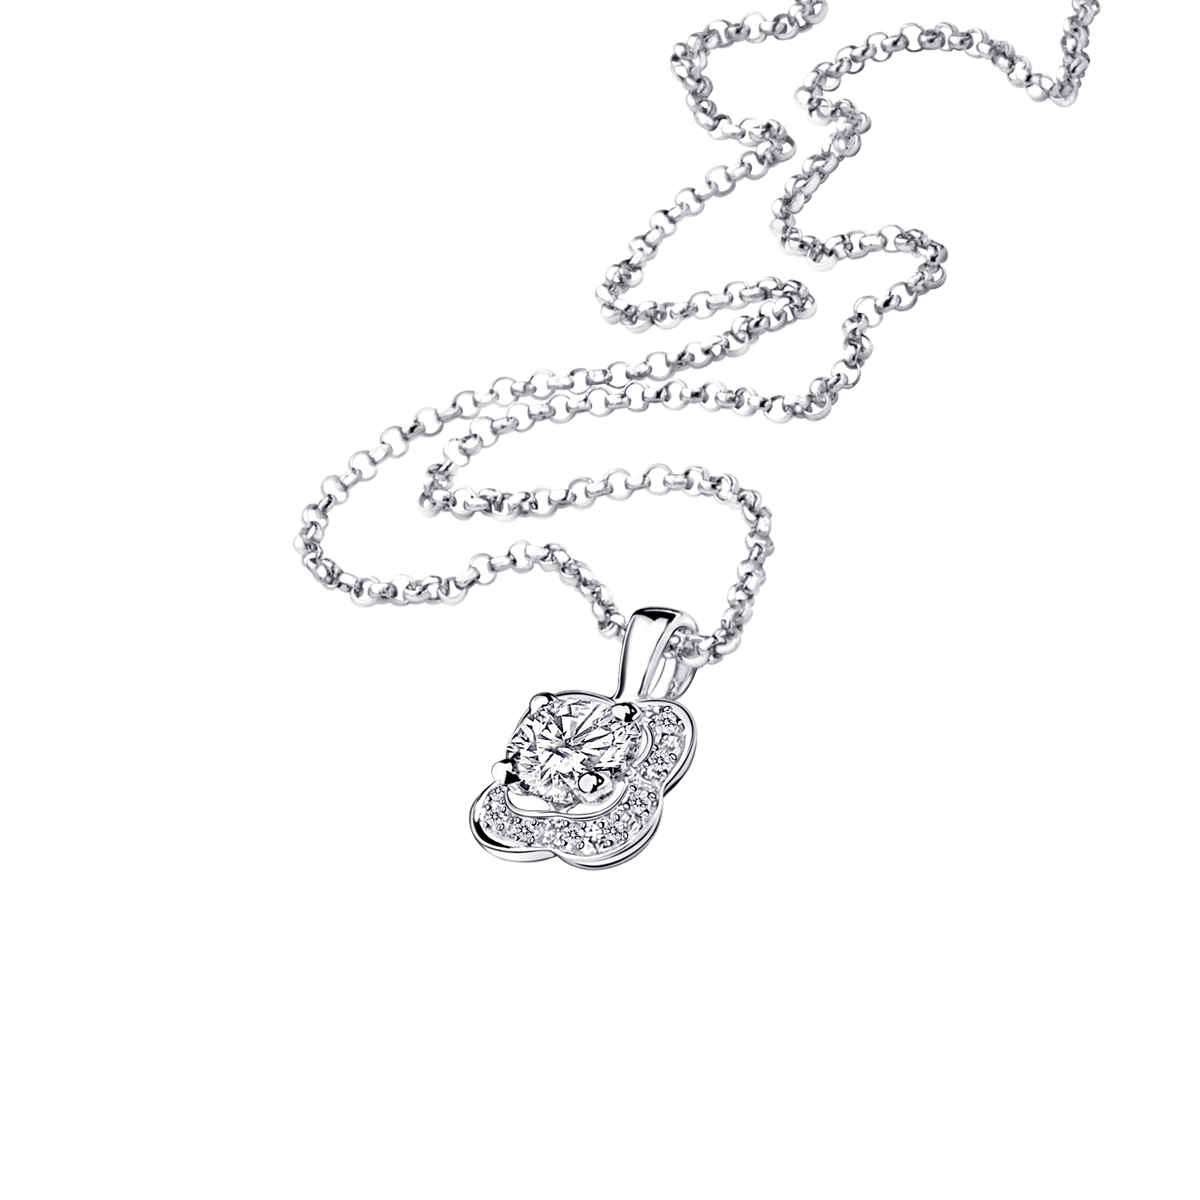 Chance of Love N°4 pendant, white gold and diamonds